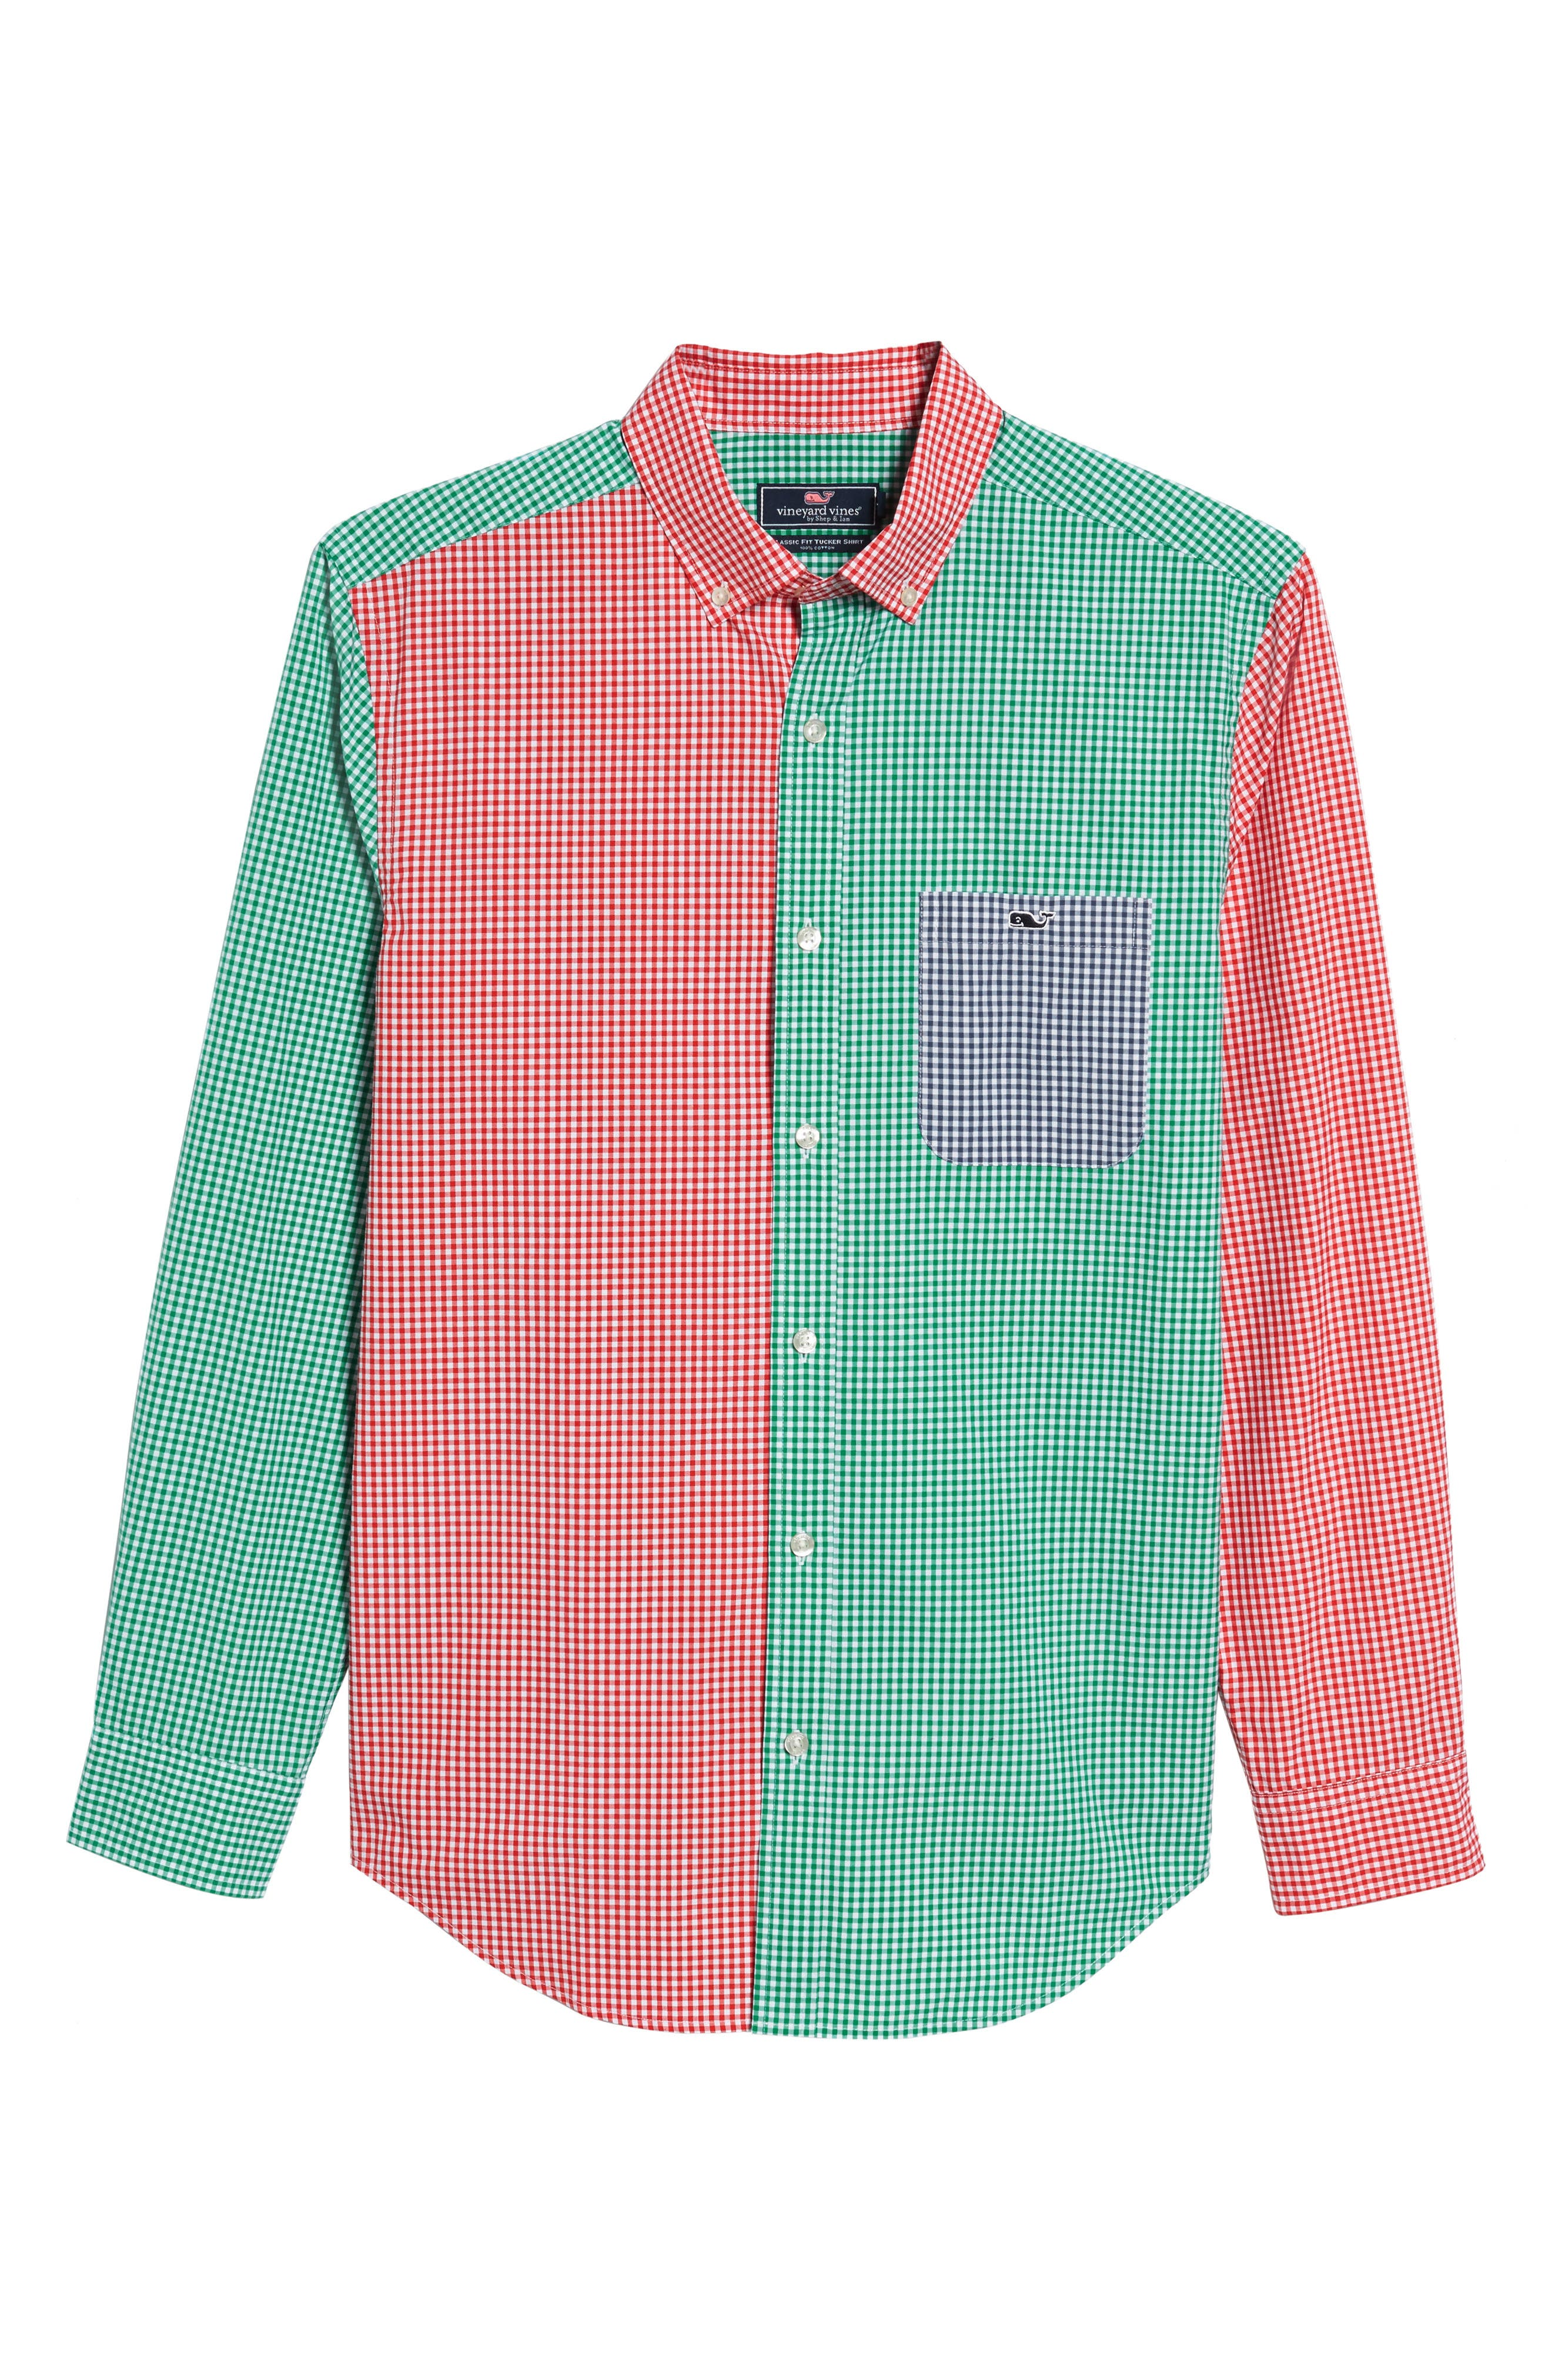 Holiday Party Classic Fit Colorblock Sport Shirt,                             Alternate thumbnail 6, color,                             600